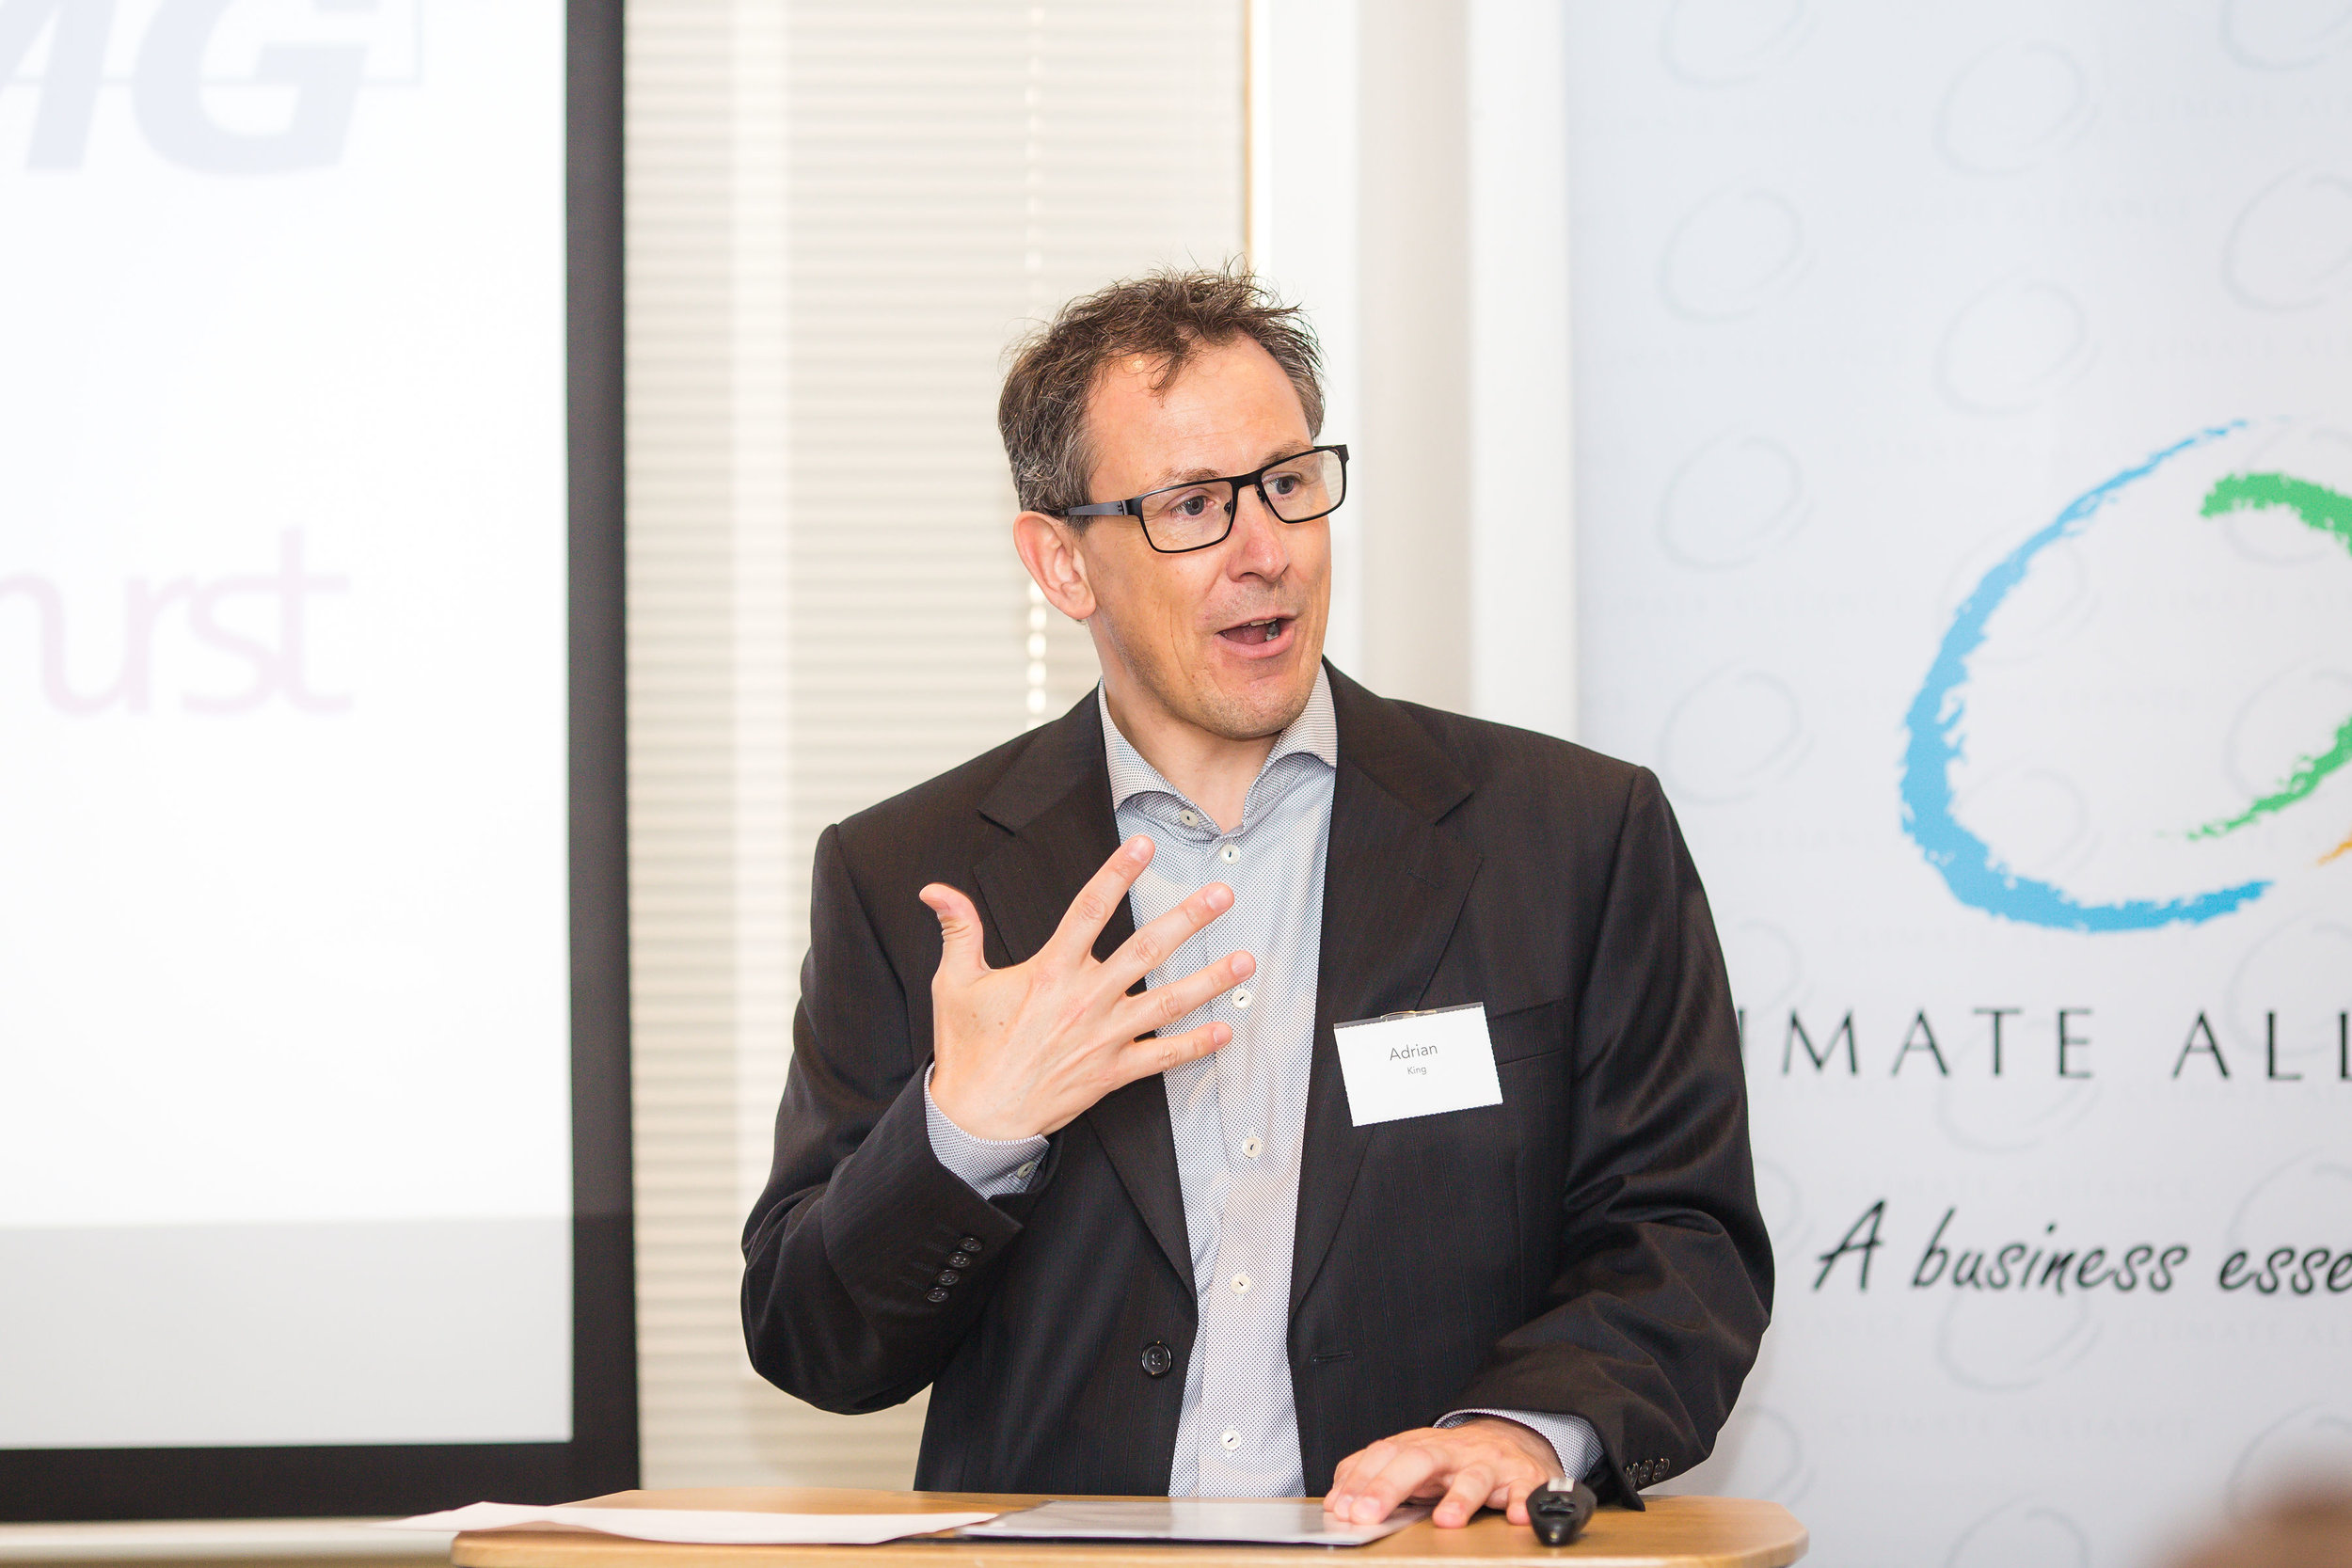 Adrian King, KPMG partner responsible for Sustainability Services, MC and panel moderator